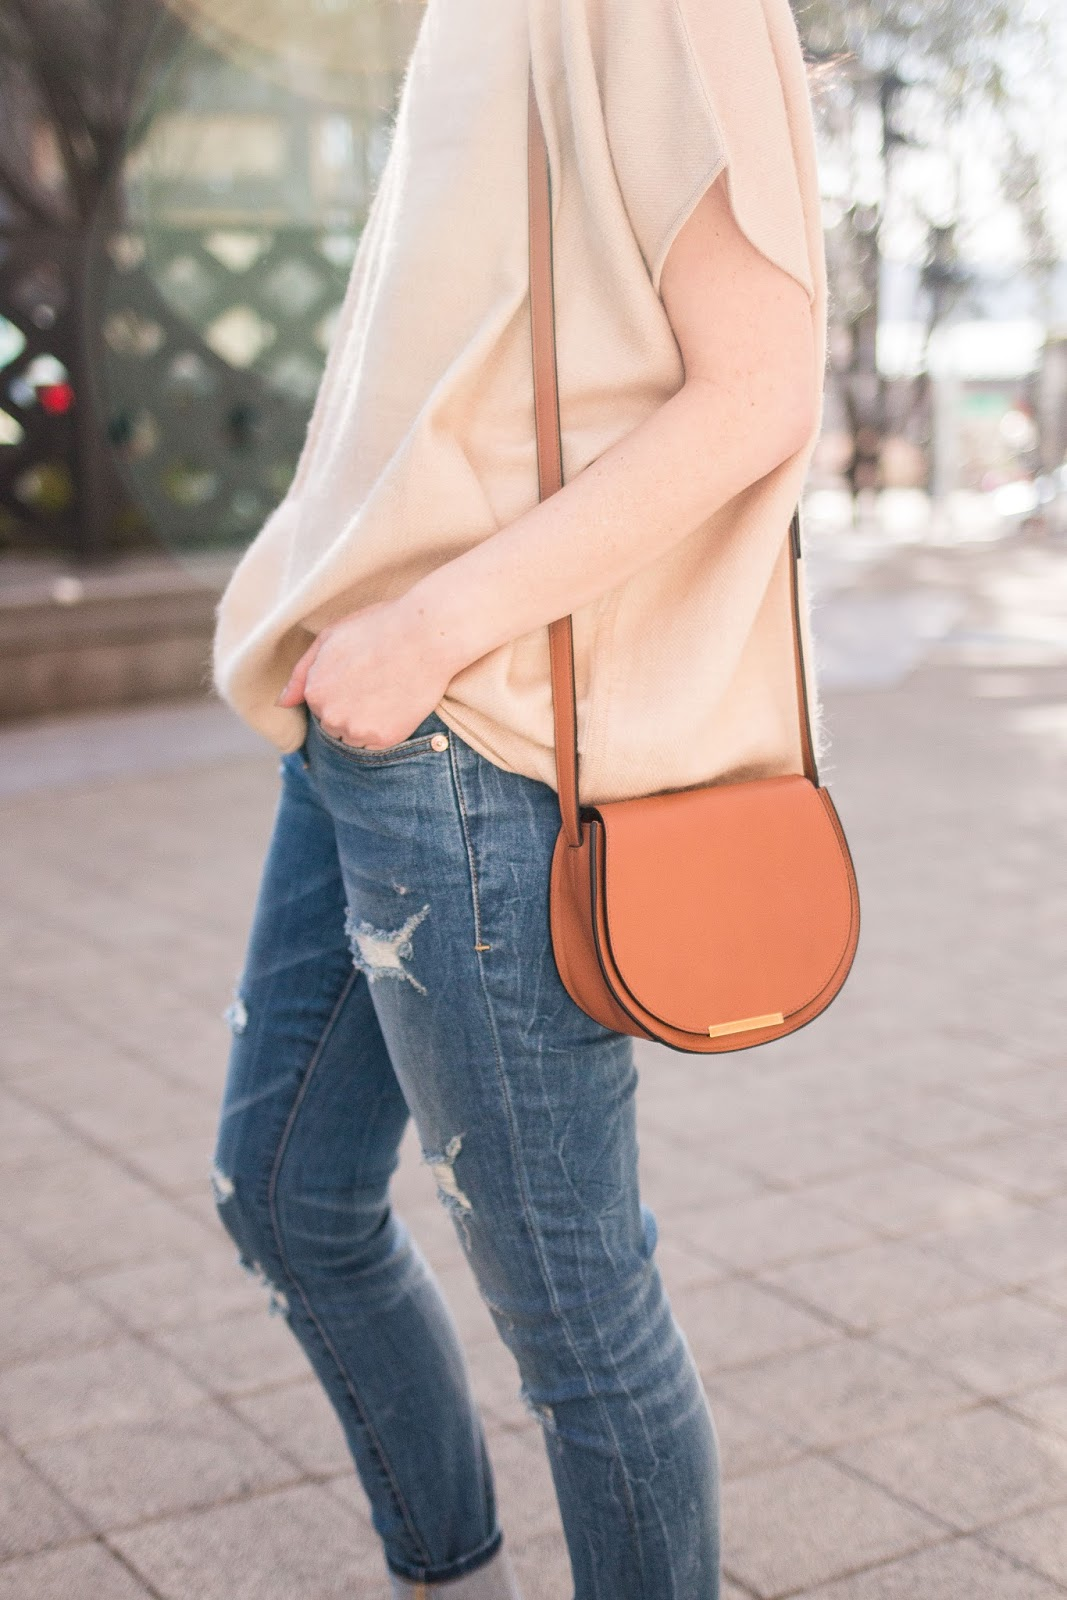 Embracing Fewer, Better Things in My Closet with Cuyana